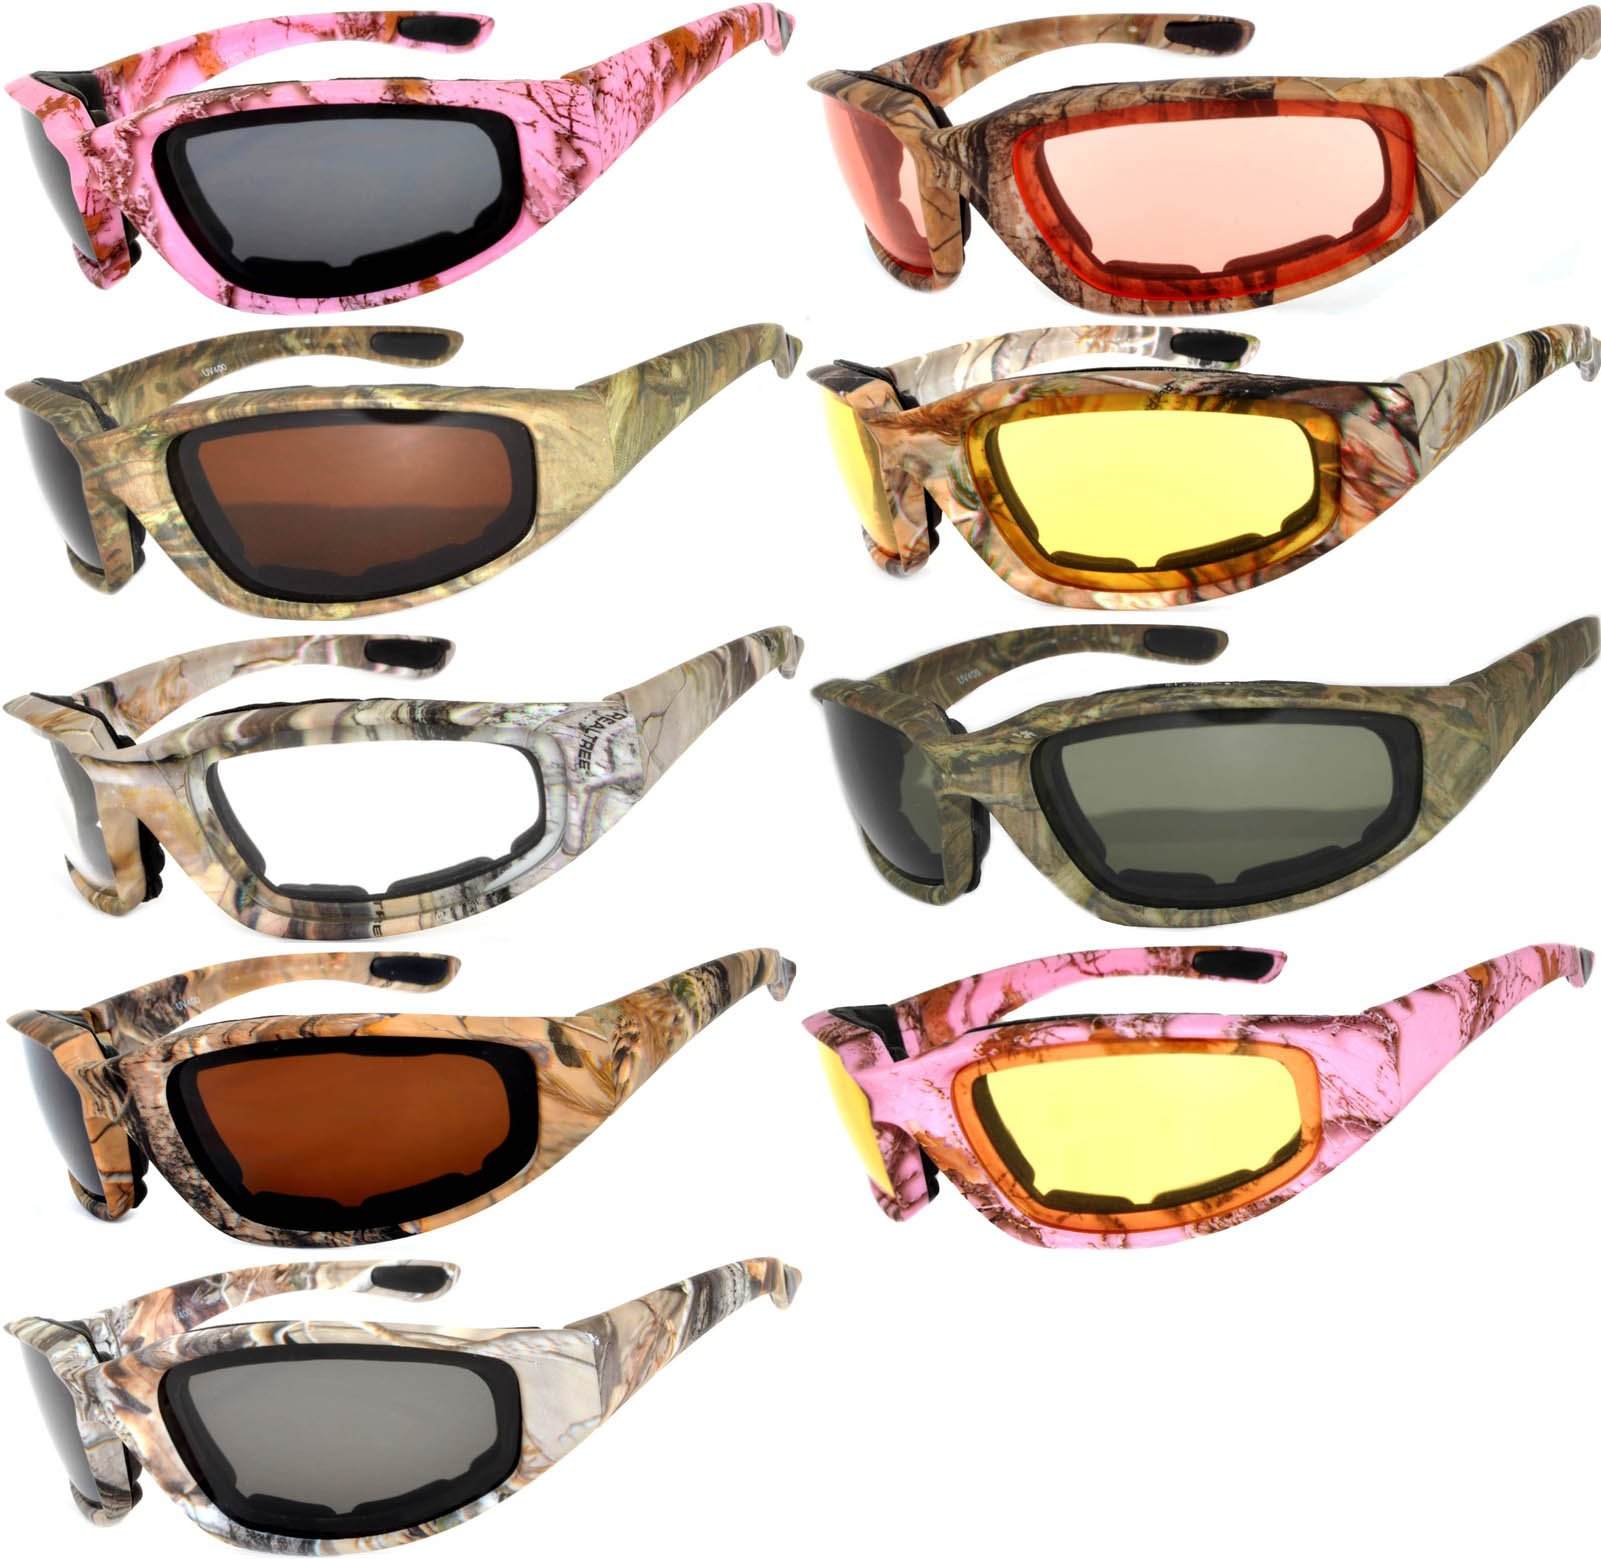 Womens Pink Padded Foam Motorcycle Biker Glasses Goggles 99% UV protection (Camo_Mix_9p, Colored)